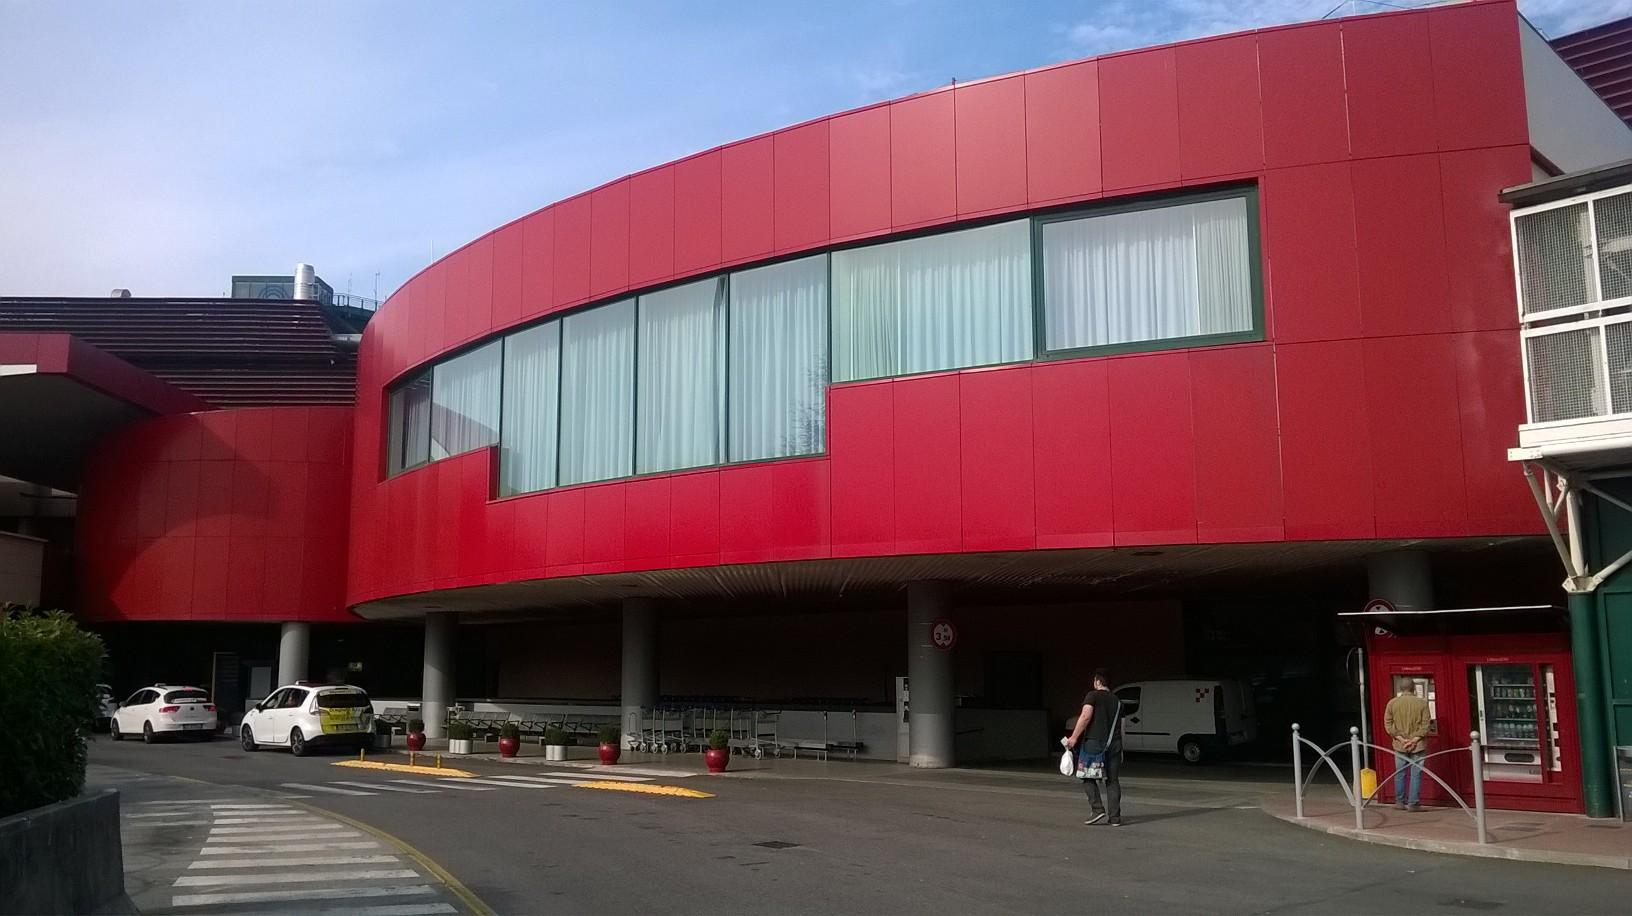 bologne G Marconi airport front side oct15